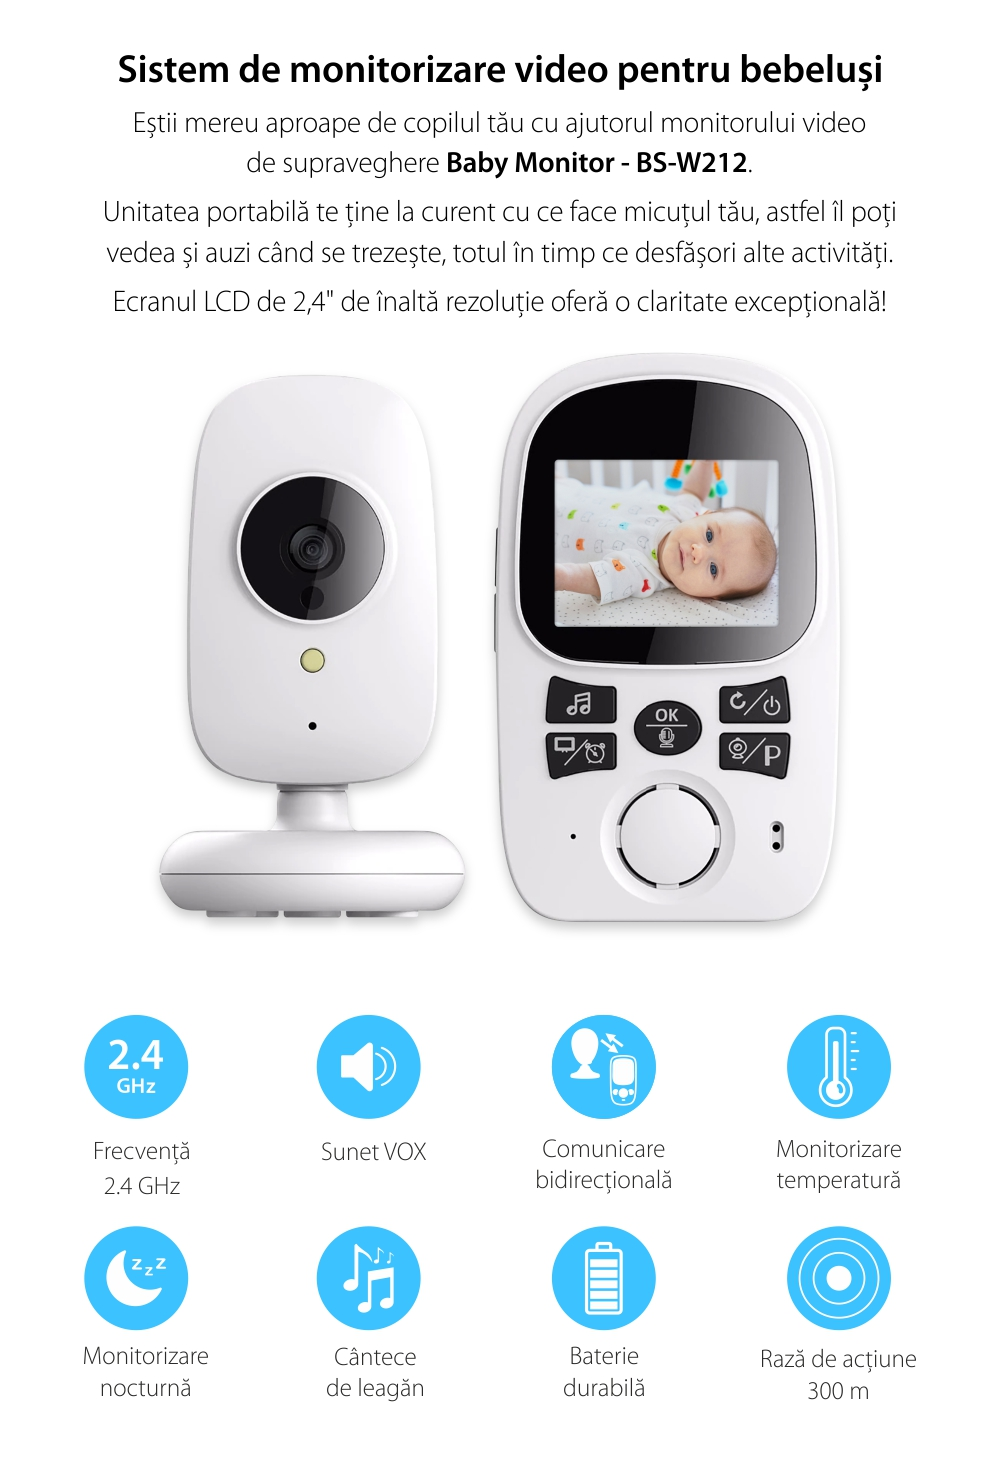 Baby Monitor Wireless BS-W212, Ecran 2.4″, Monitorizare Audio – Video, Monitorizare temperatura, Comunicare bidirectionala, Cantece, Night Vision, Baterie incorporata